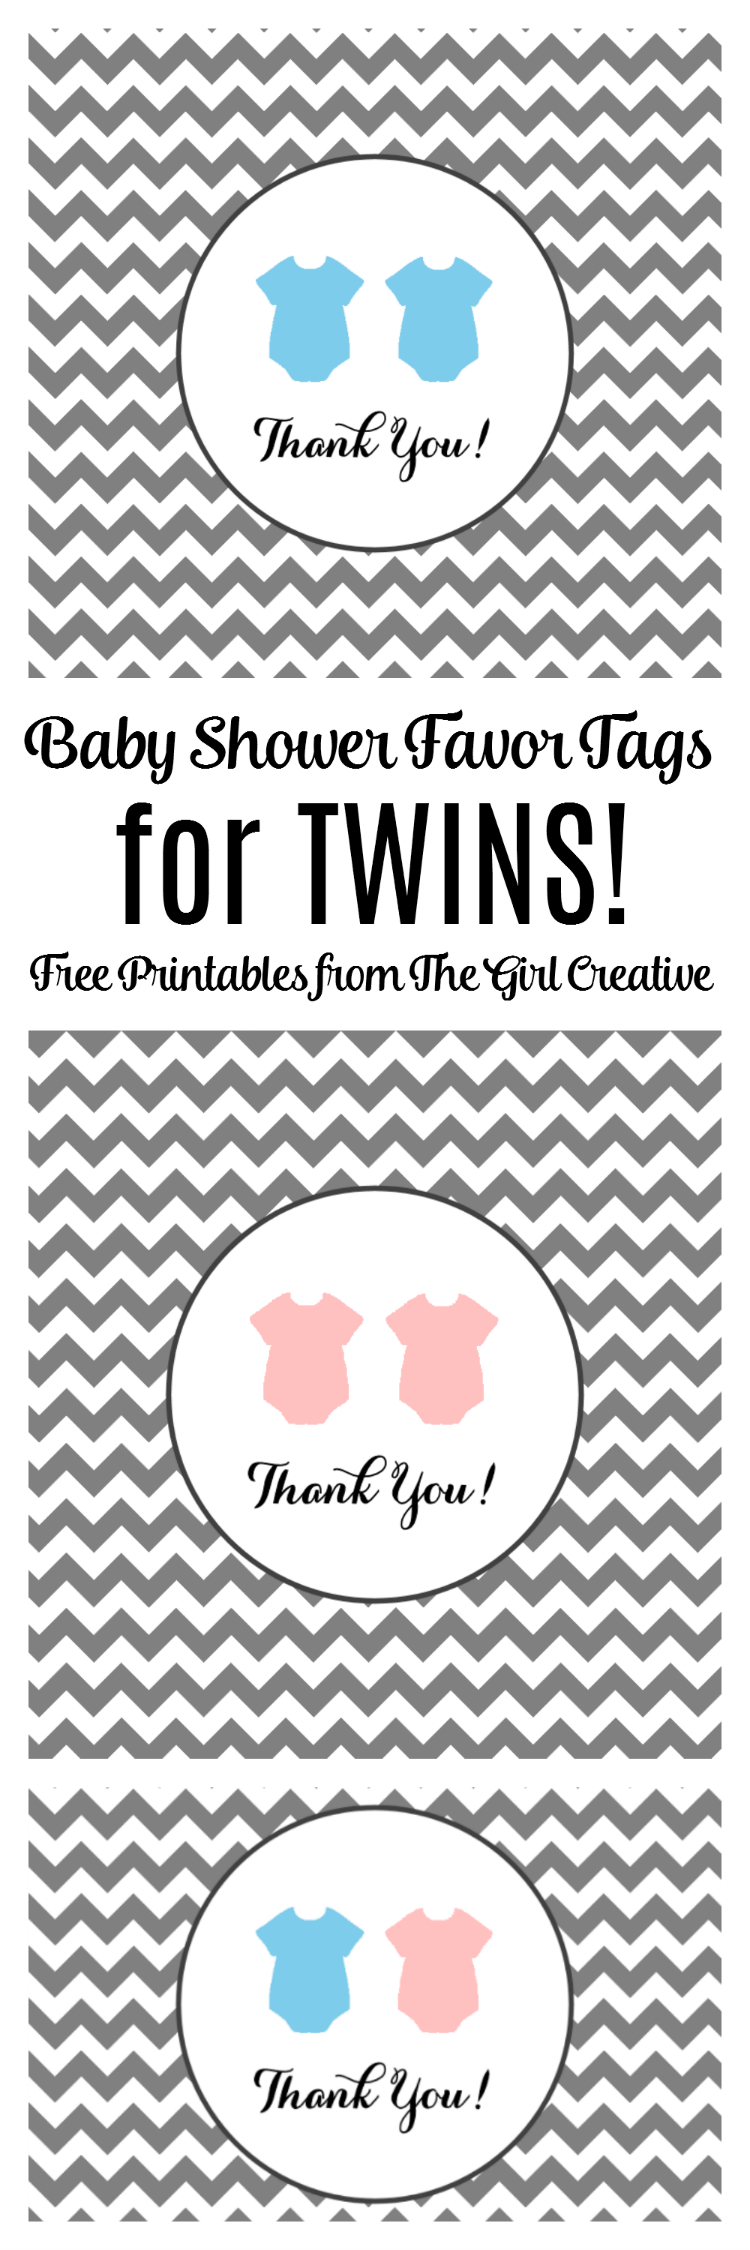 Baby Shower Favor Tags For Twins | The Top Pinned | Free Baby Shower - Free Printable Baby Shower Favor Tags Template